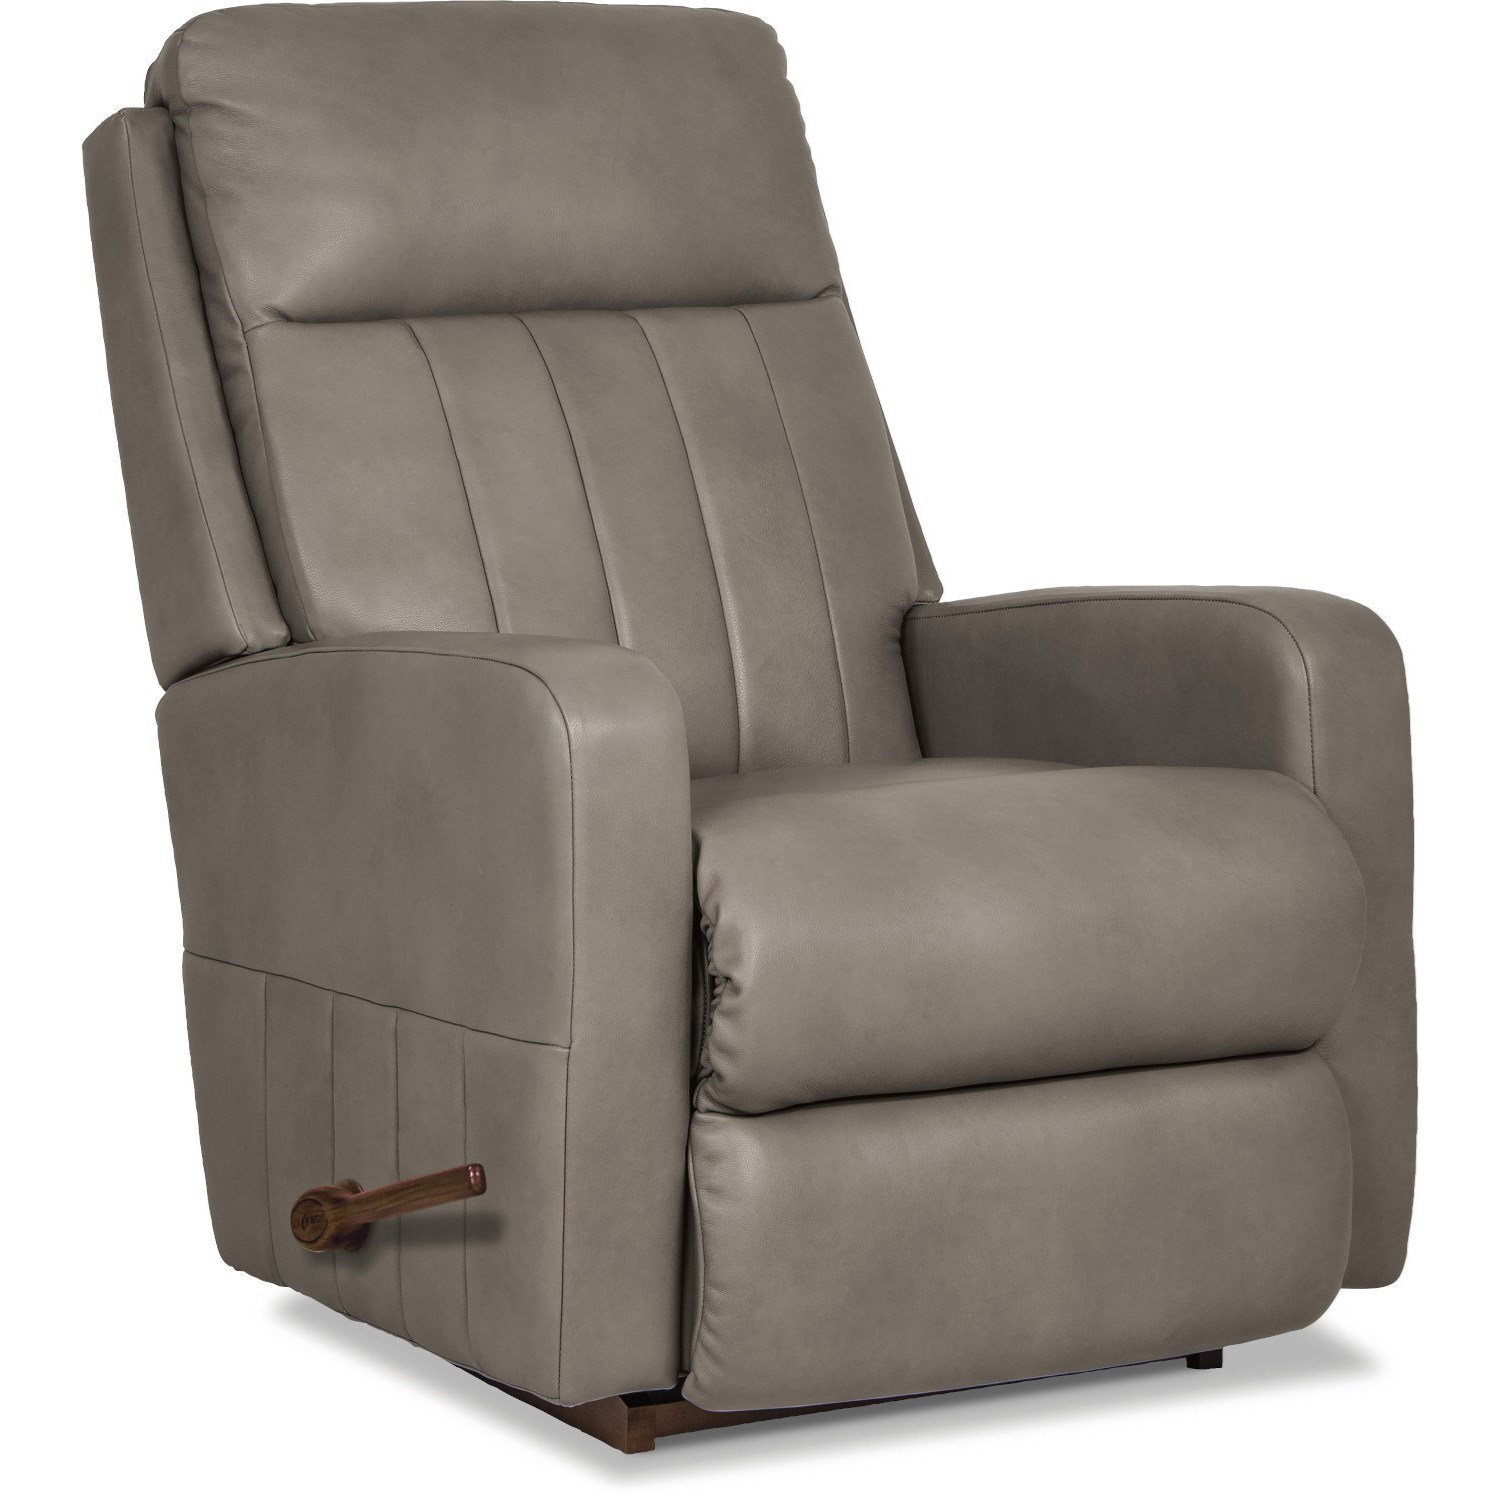 Finley Swivel Glider Recliner by La-Z-Boy at Bennett's Furniture and Mattresses